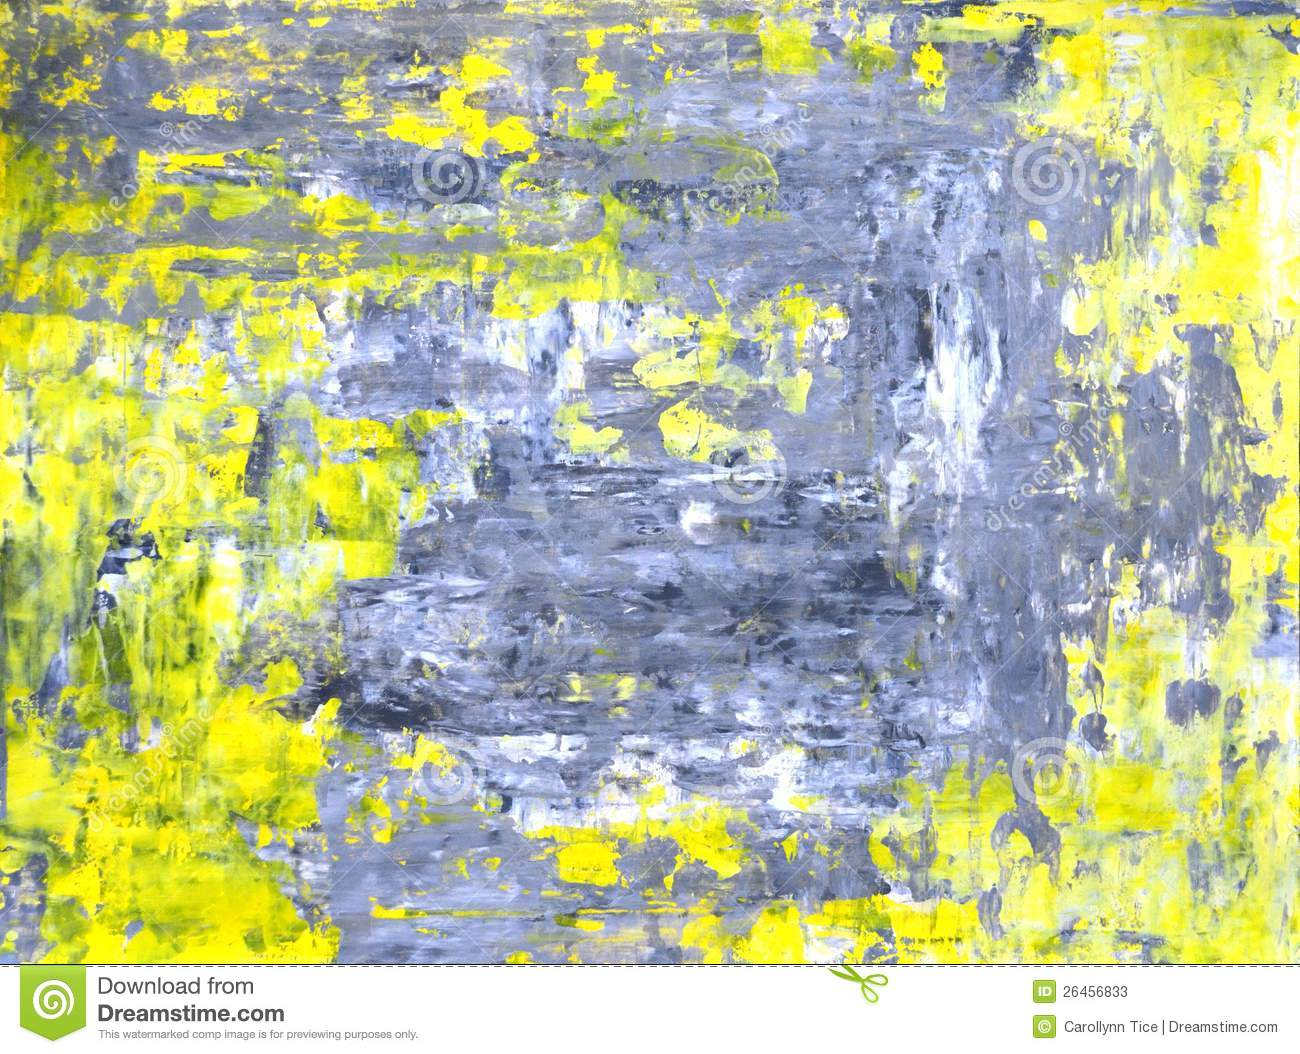 Beautiful Grey And Yellow Abstract Art Painting Stock Image - Image of image  ZY85